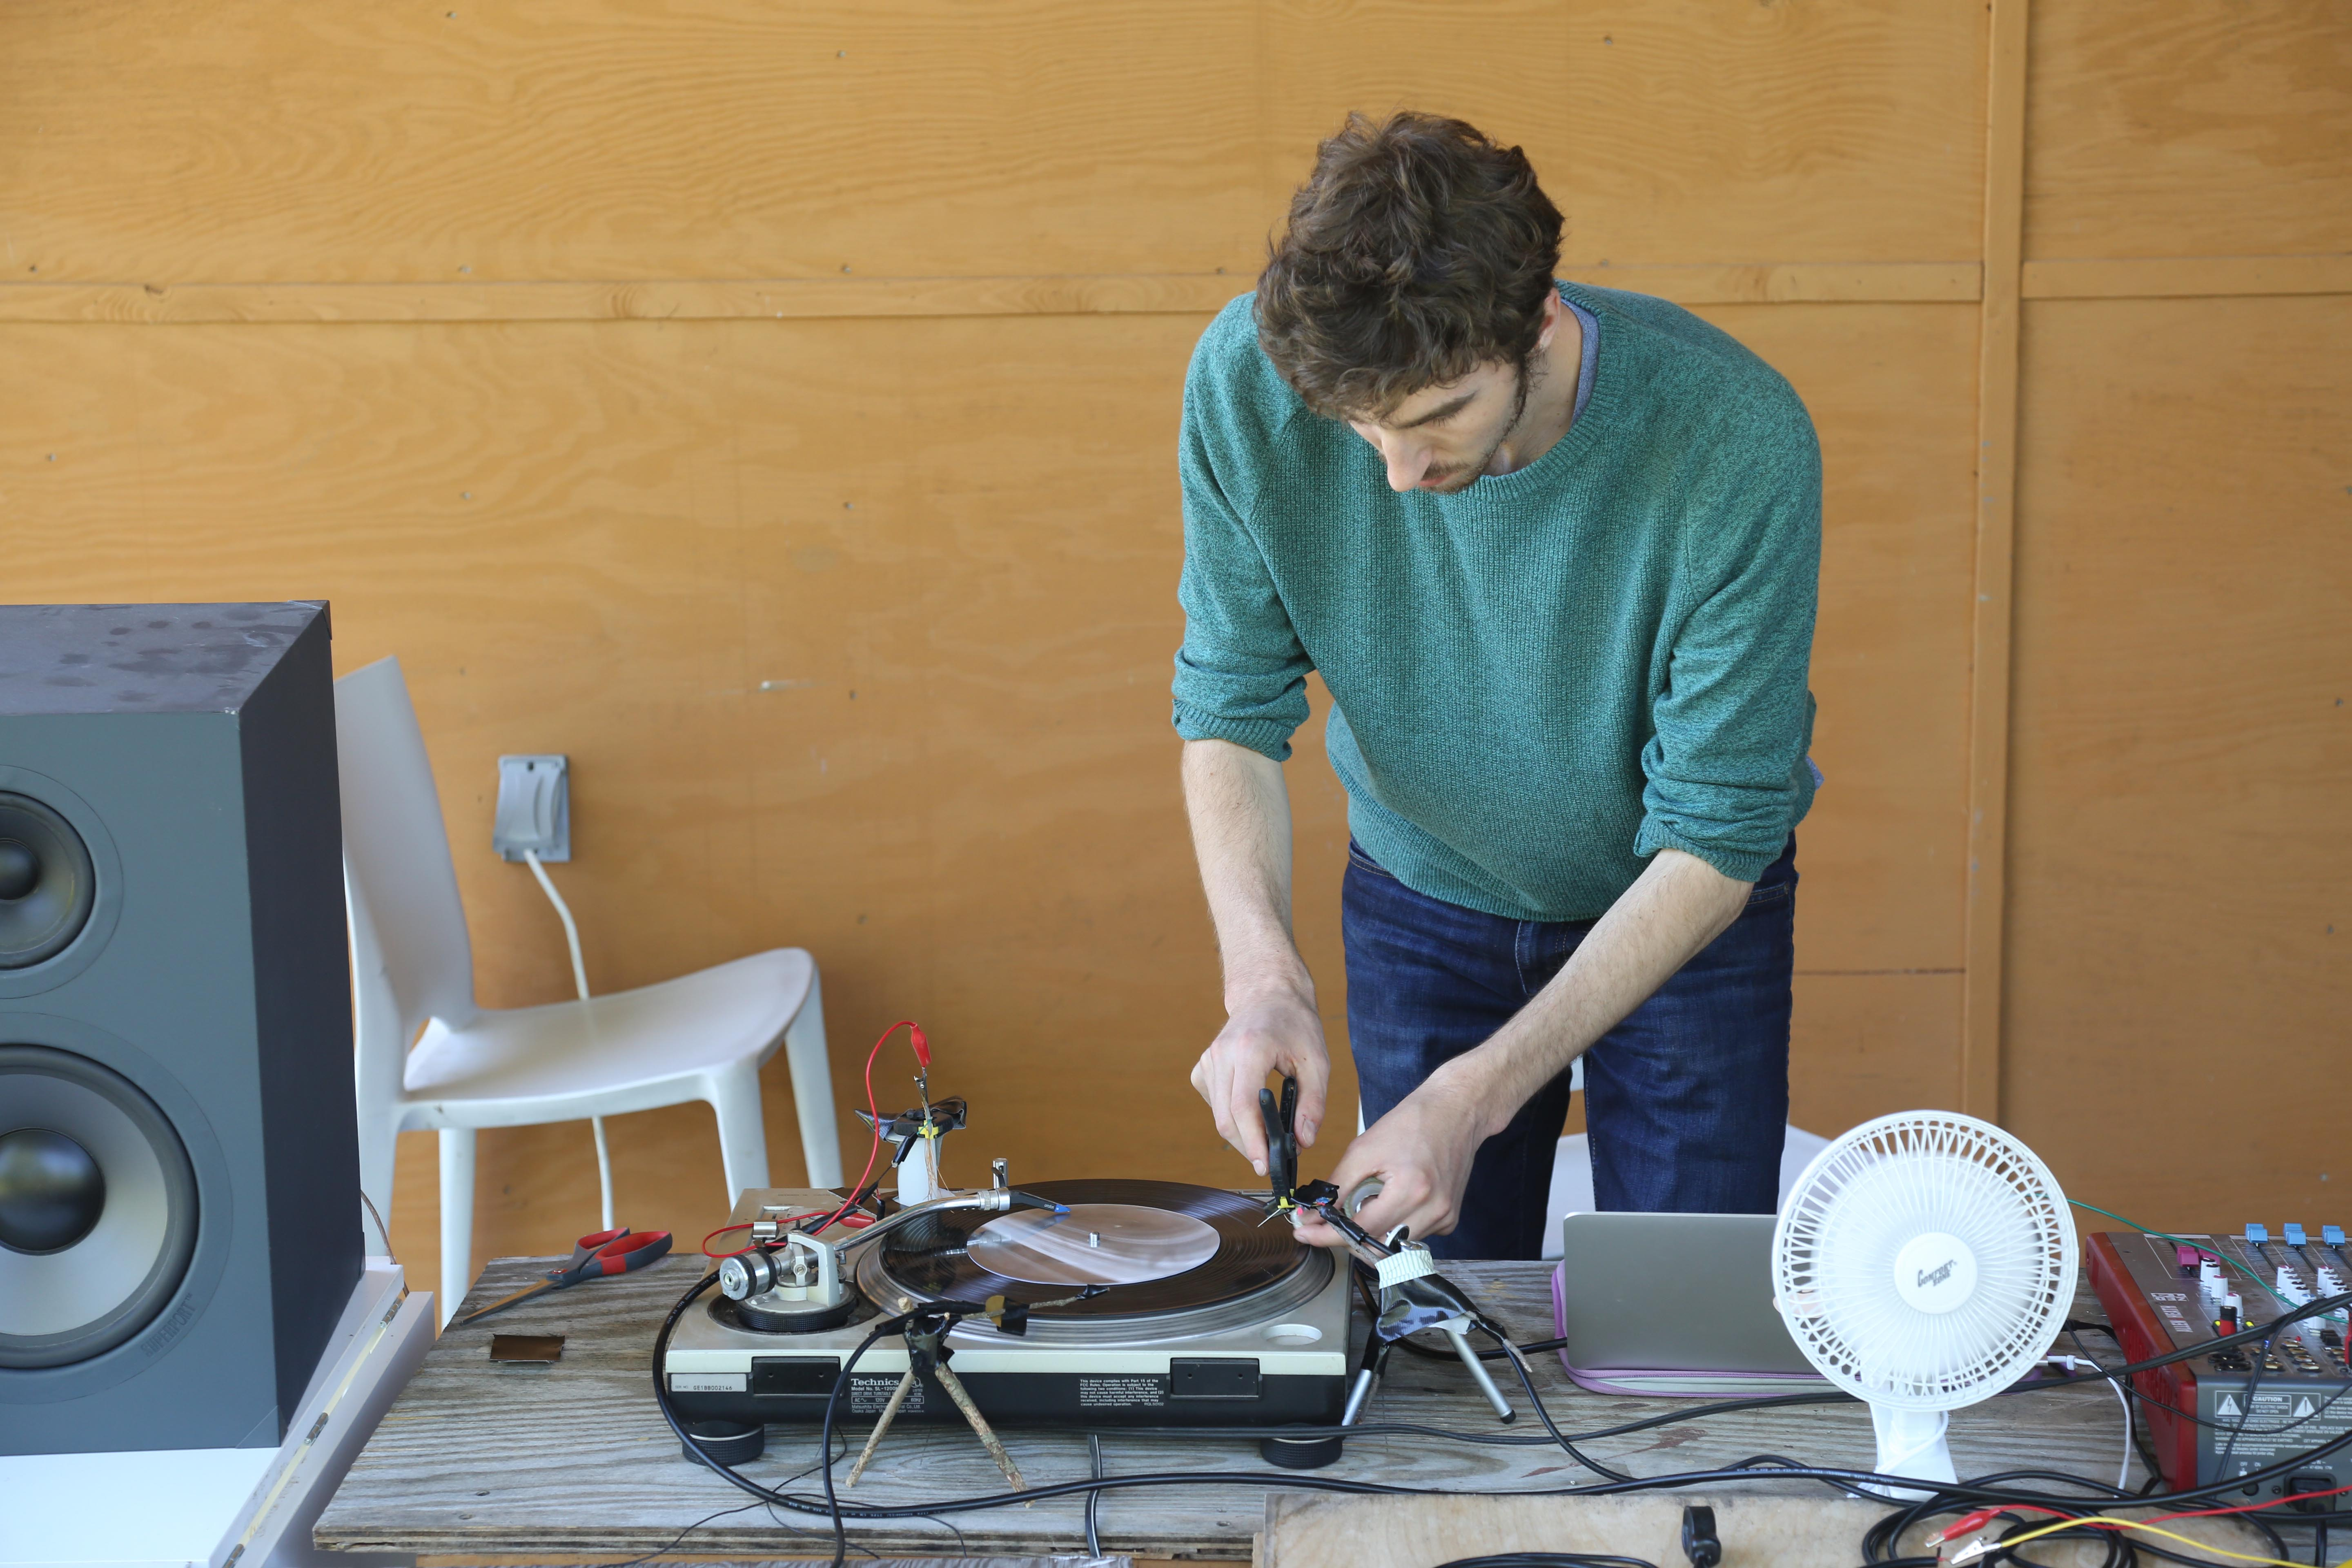 Adjusting the Contact of a Custom Stylus to Lathe-Cut Vinyl as Part of Dan Tapper's Residency Culminating Event at Wave Farm